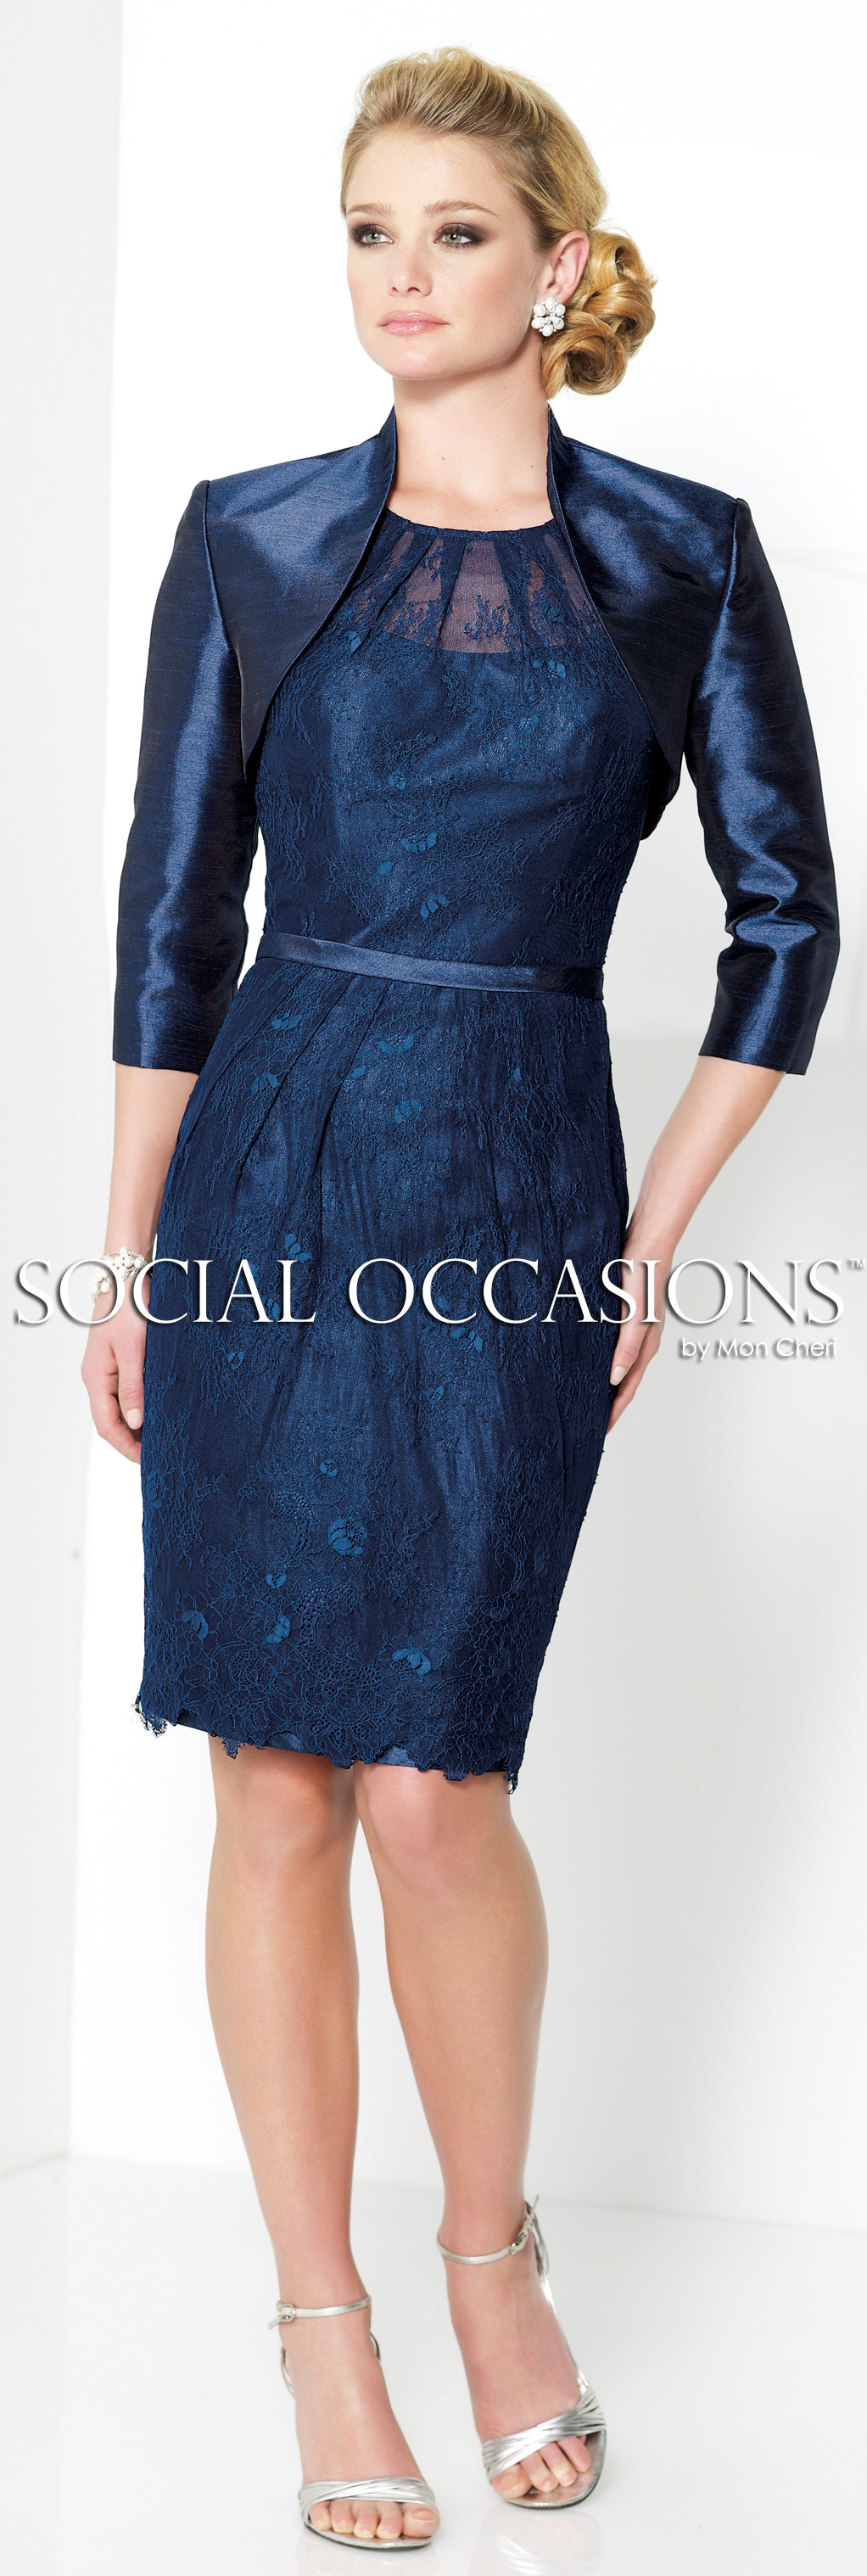 Wedding guest dresses fall formal fashion and short suit